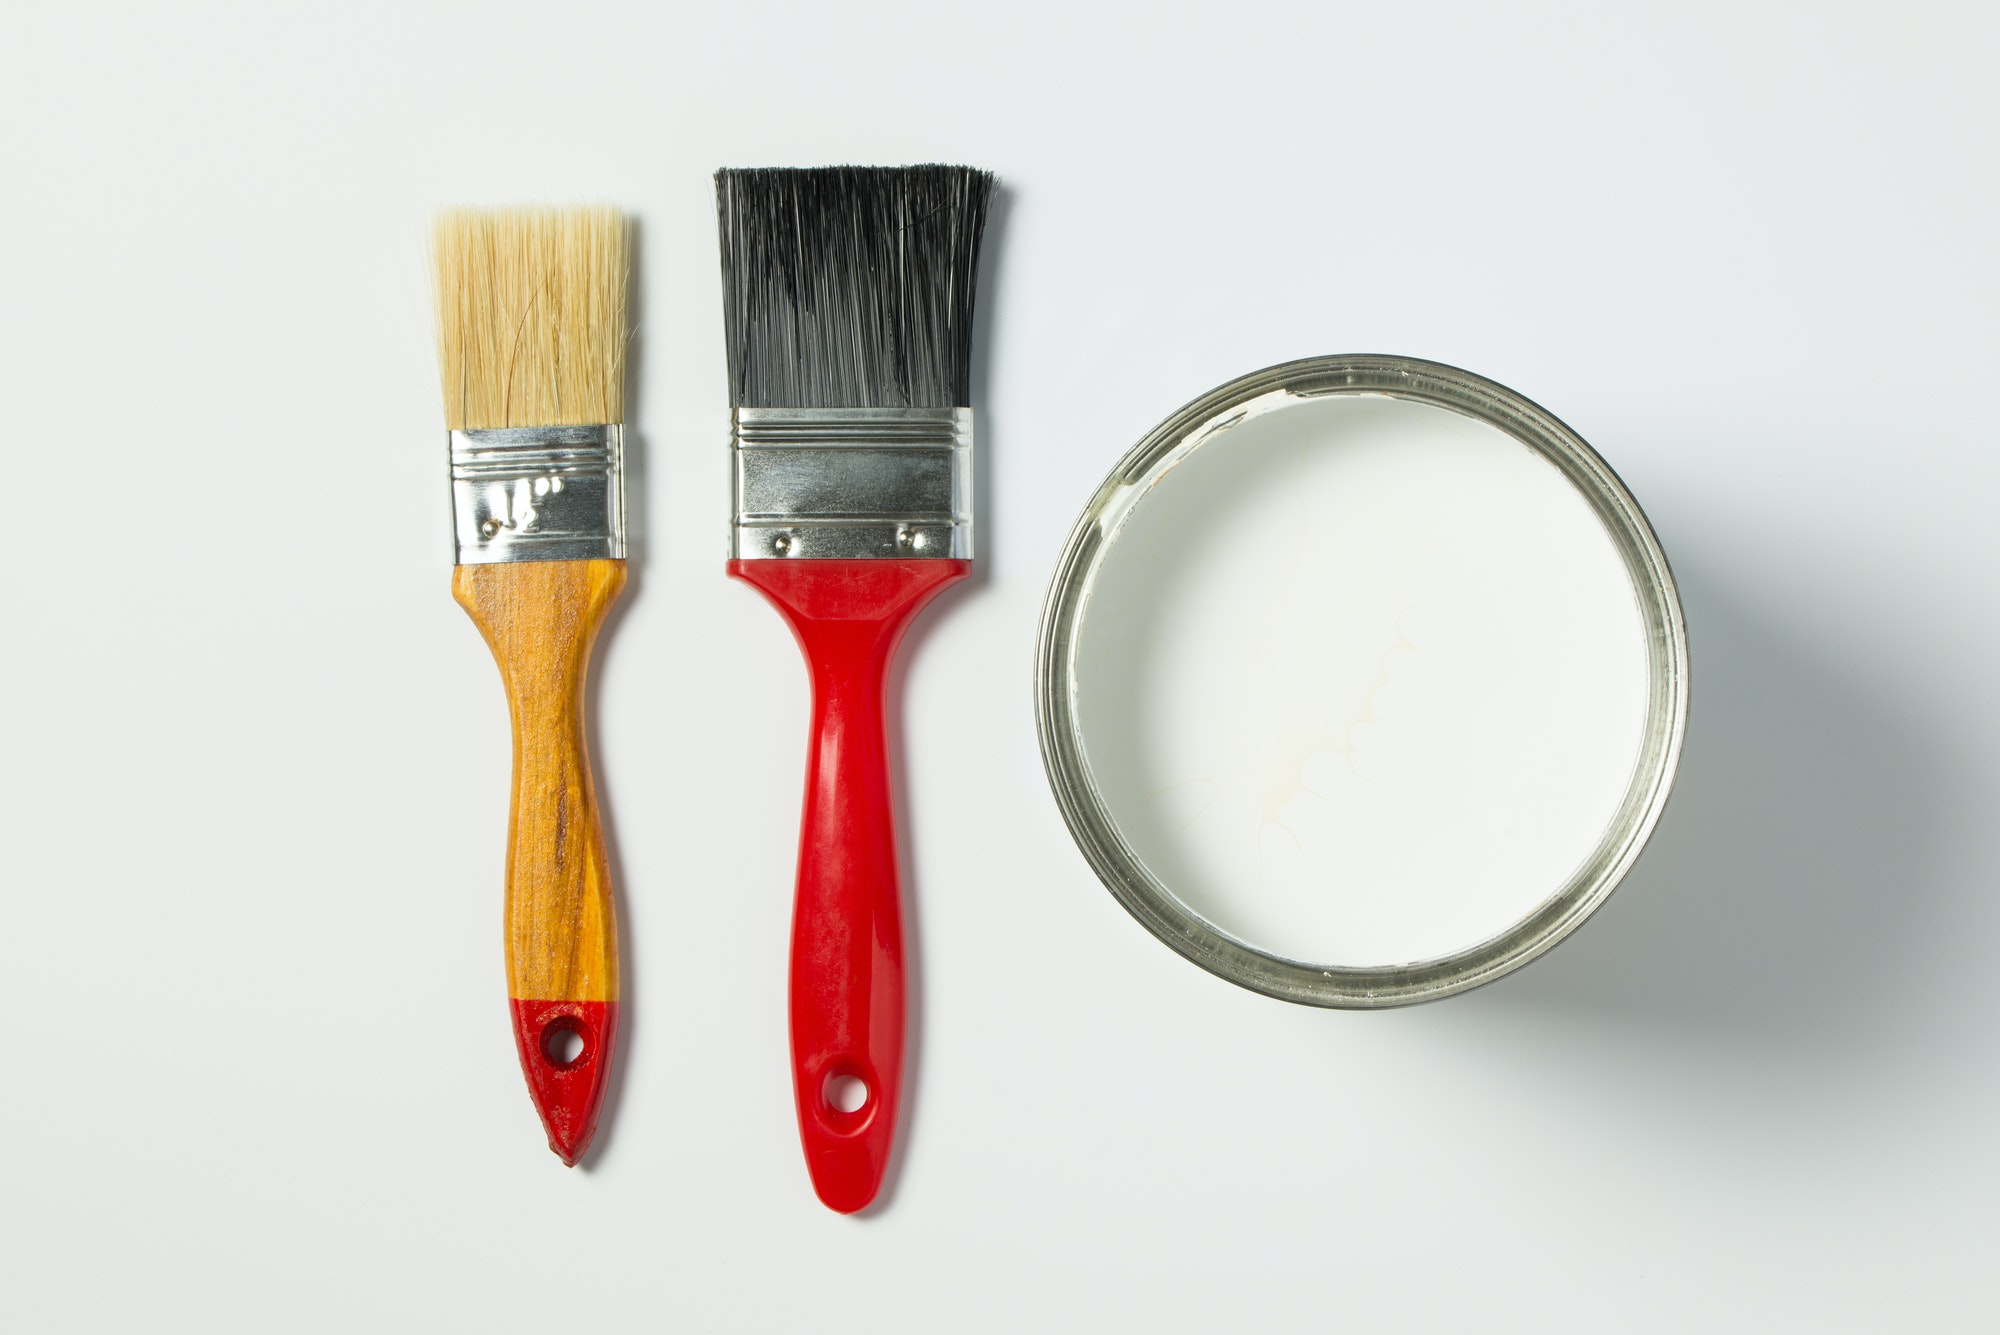 White paint and paint brushes